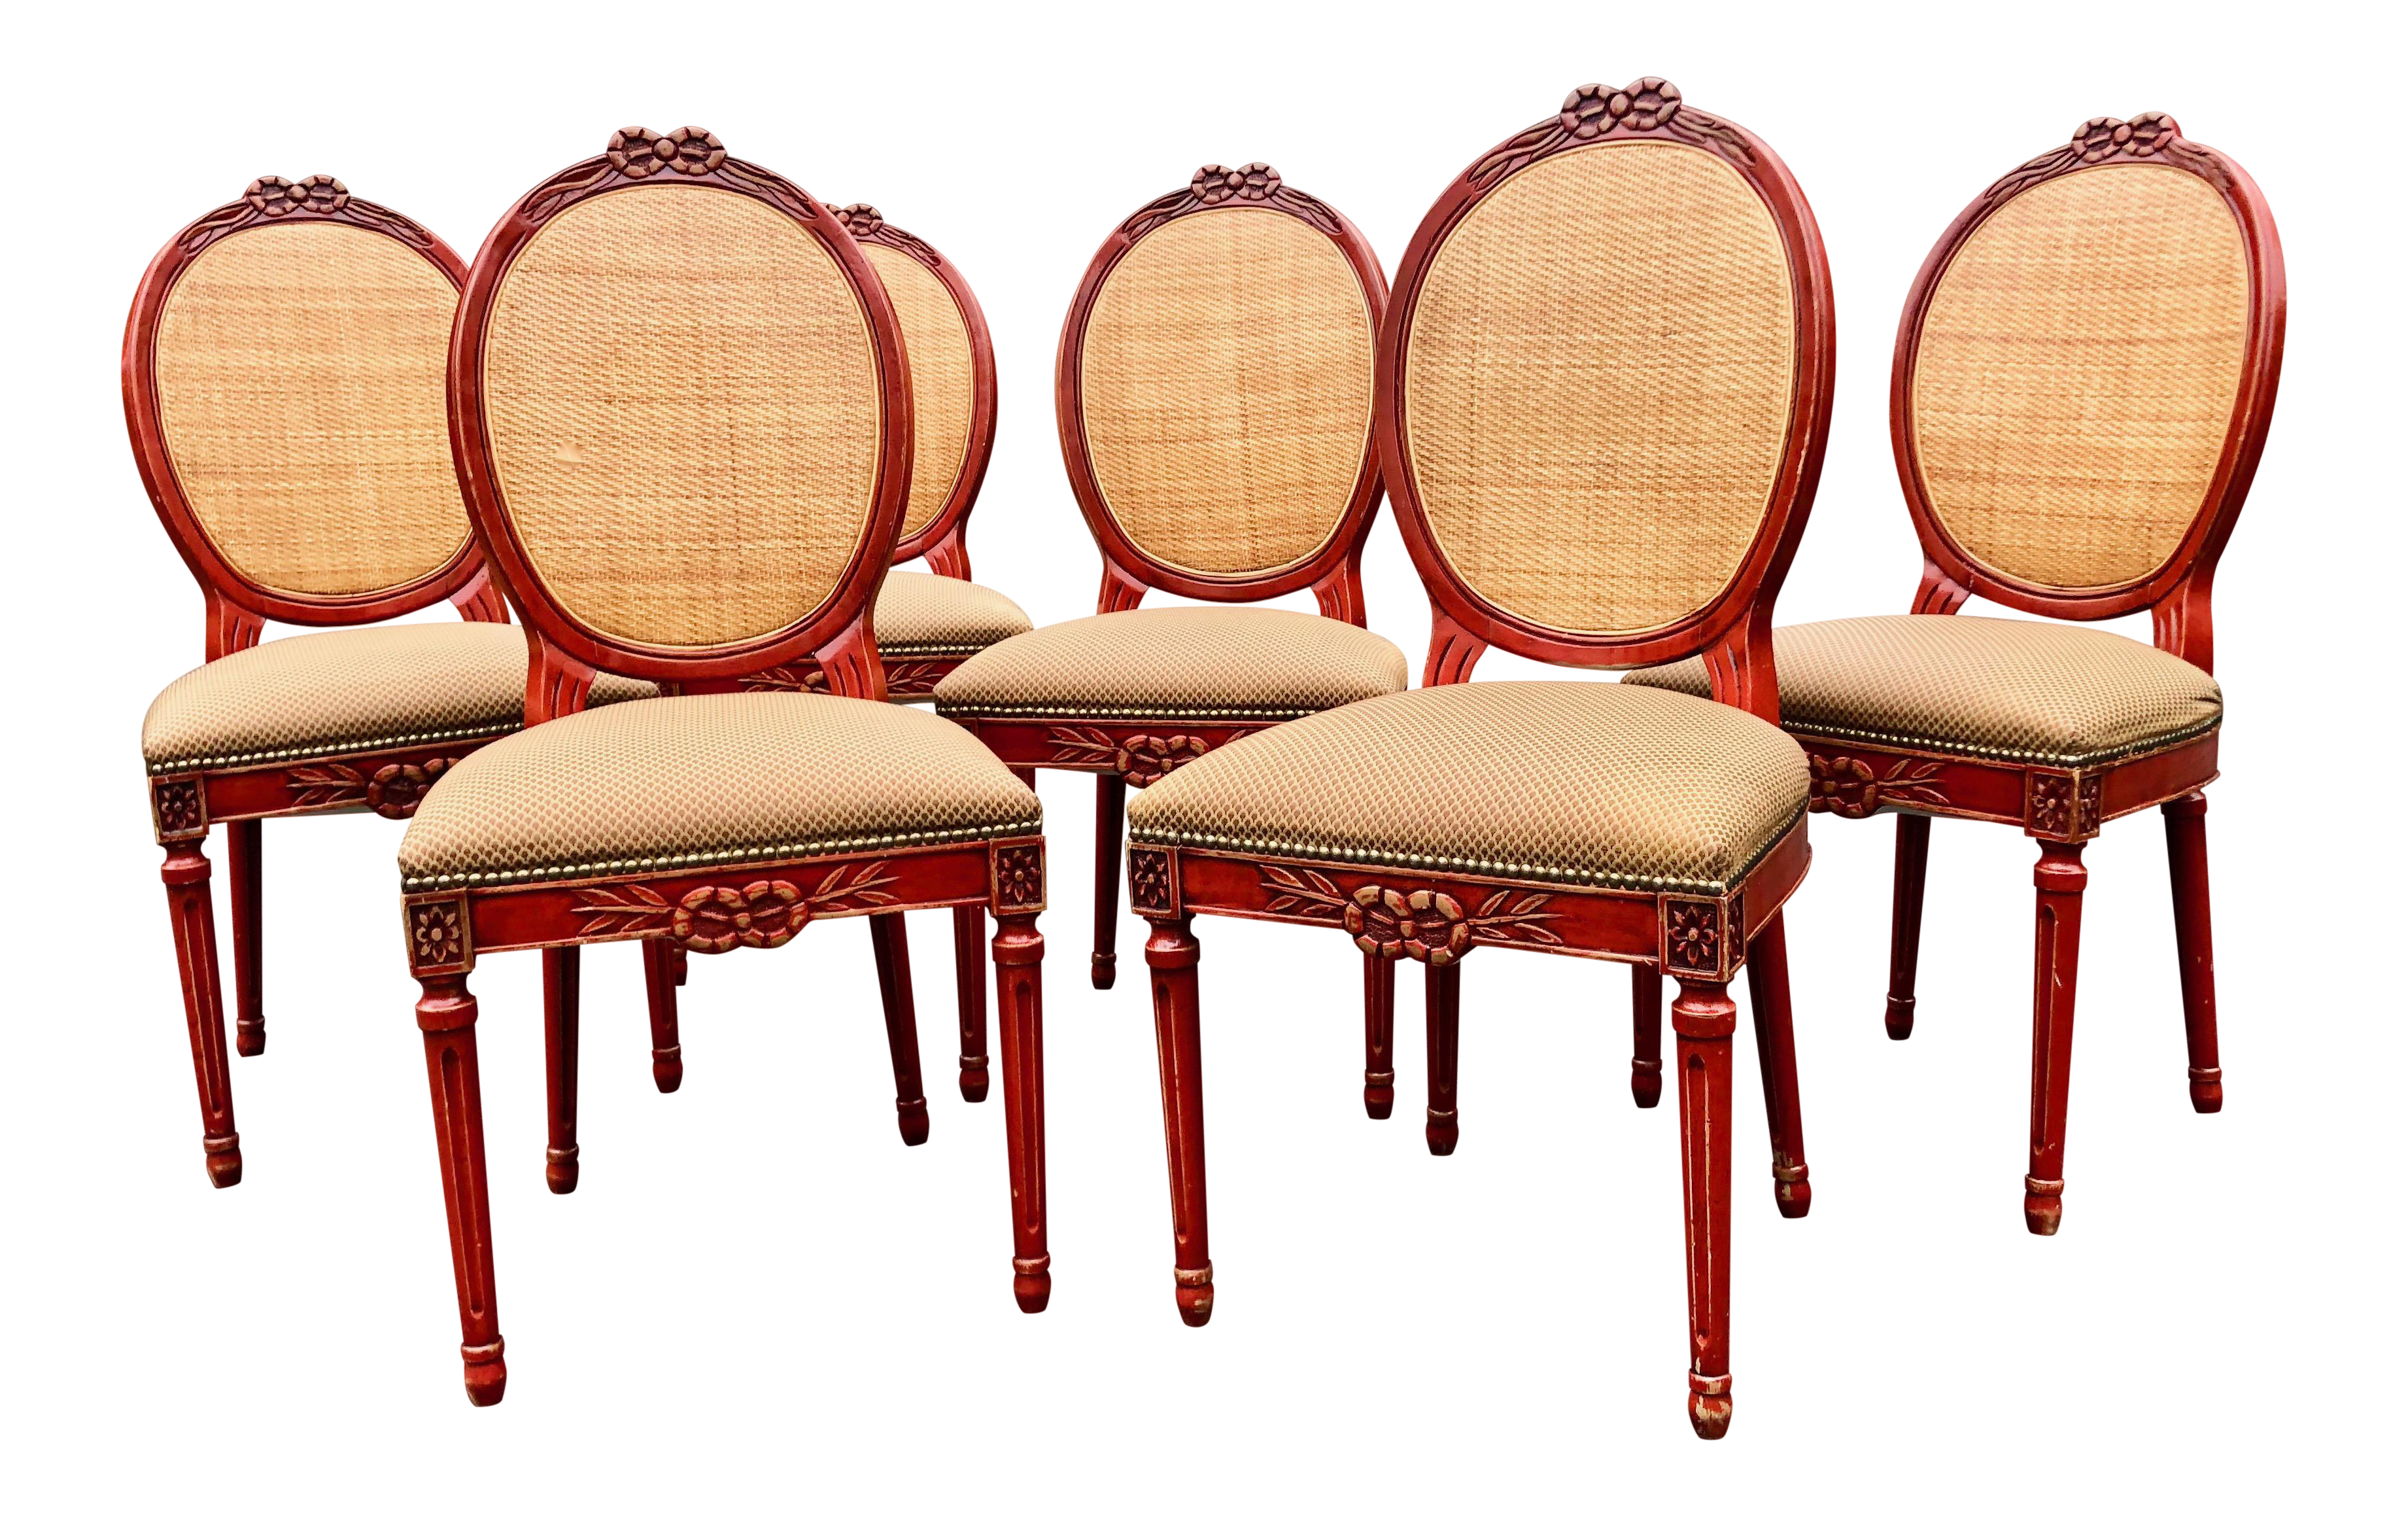 Enjoyable French Country Style Red Lacquer Gilt Dining Chairs Set Of 6 Gmtry Best Dining Table And Chair Ideas Images Gmtryco